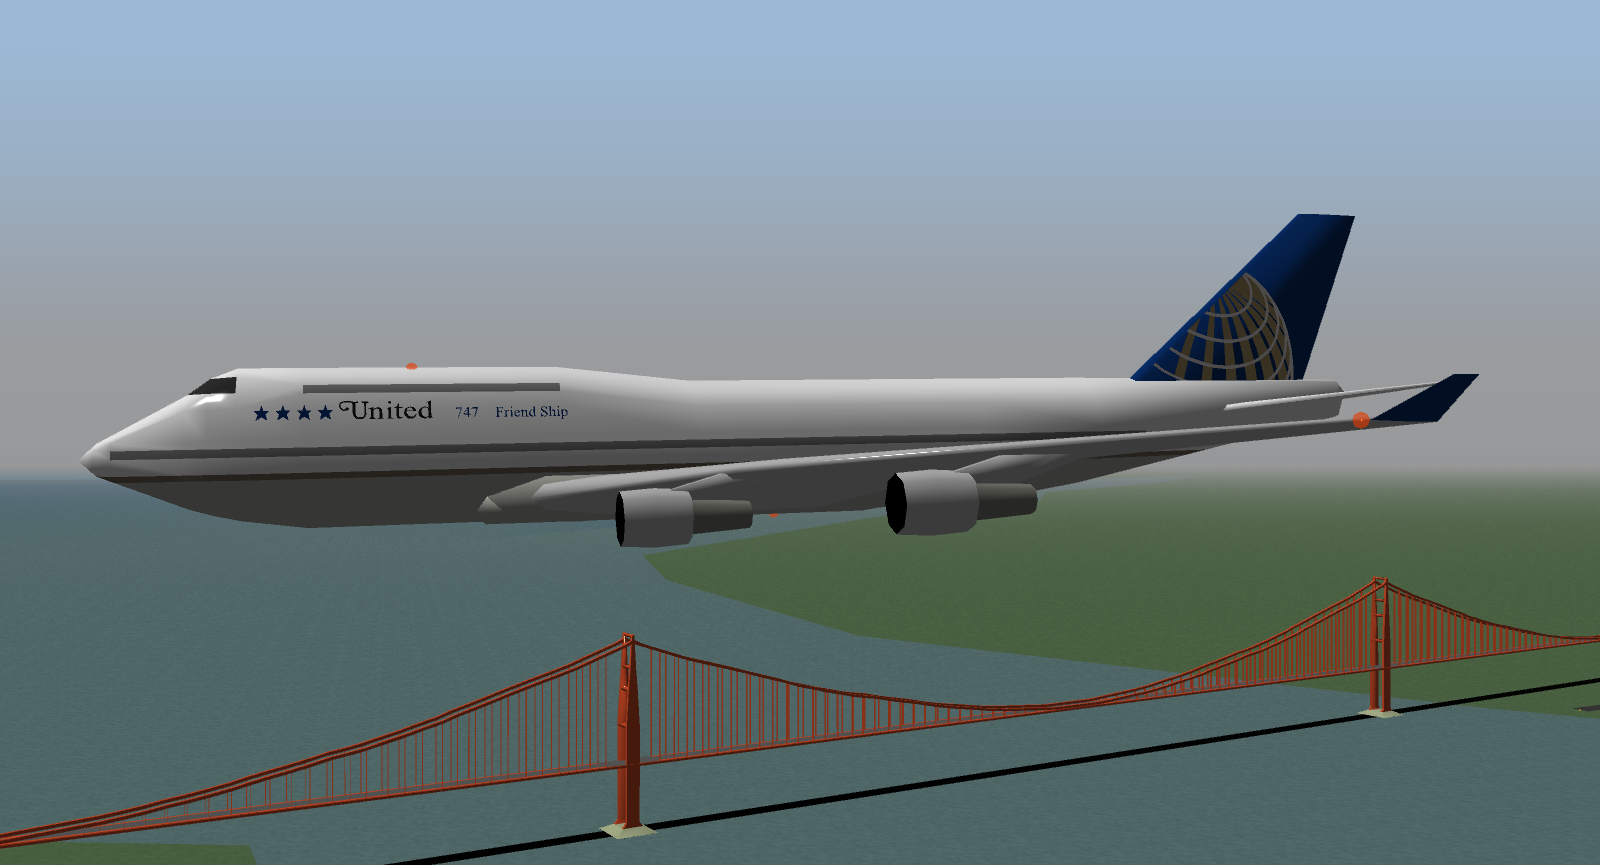 united 747 friend ship.png